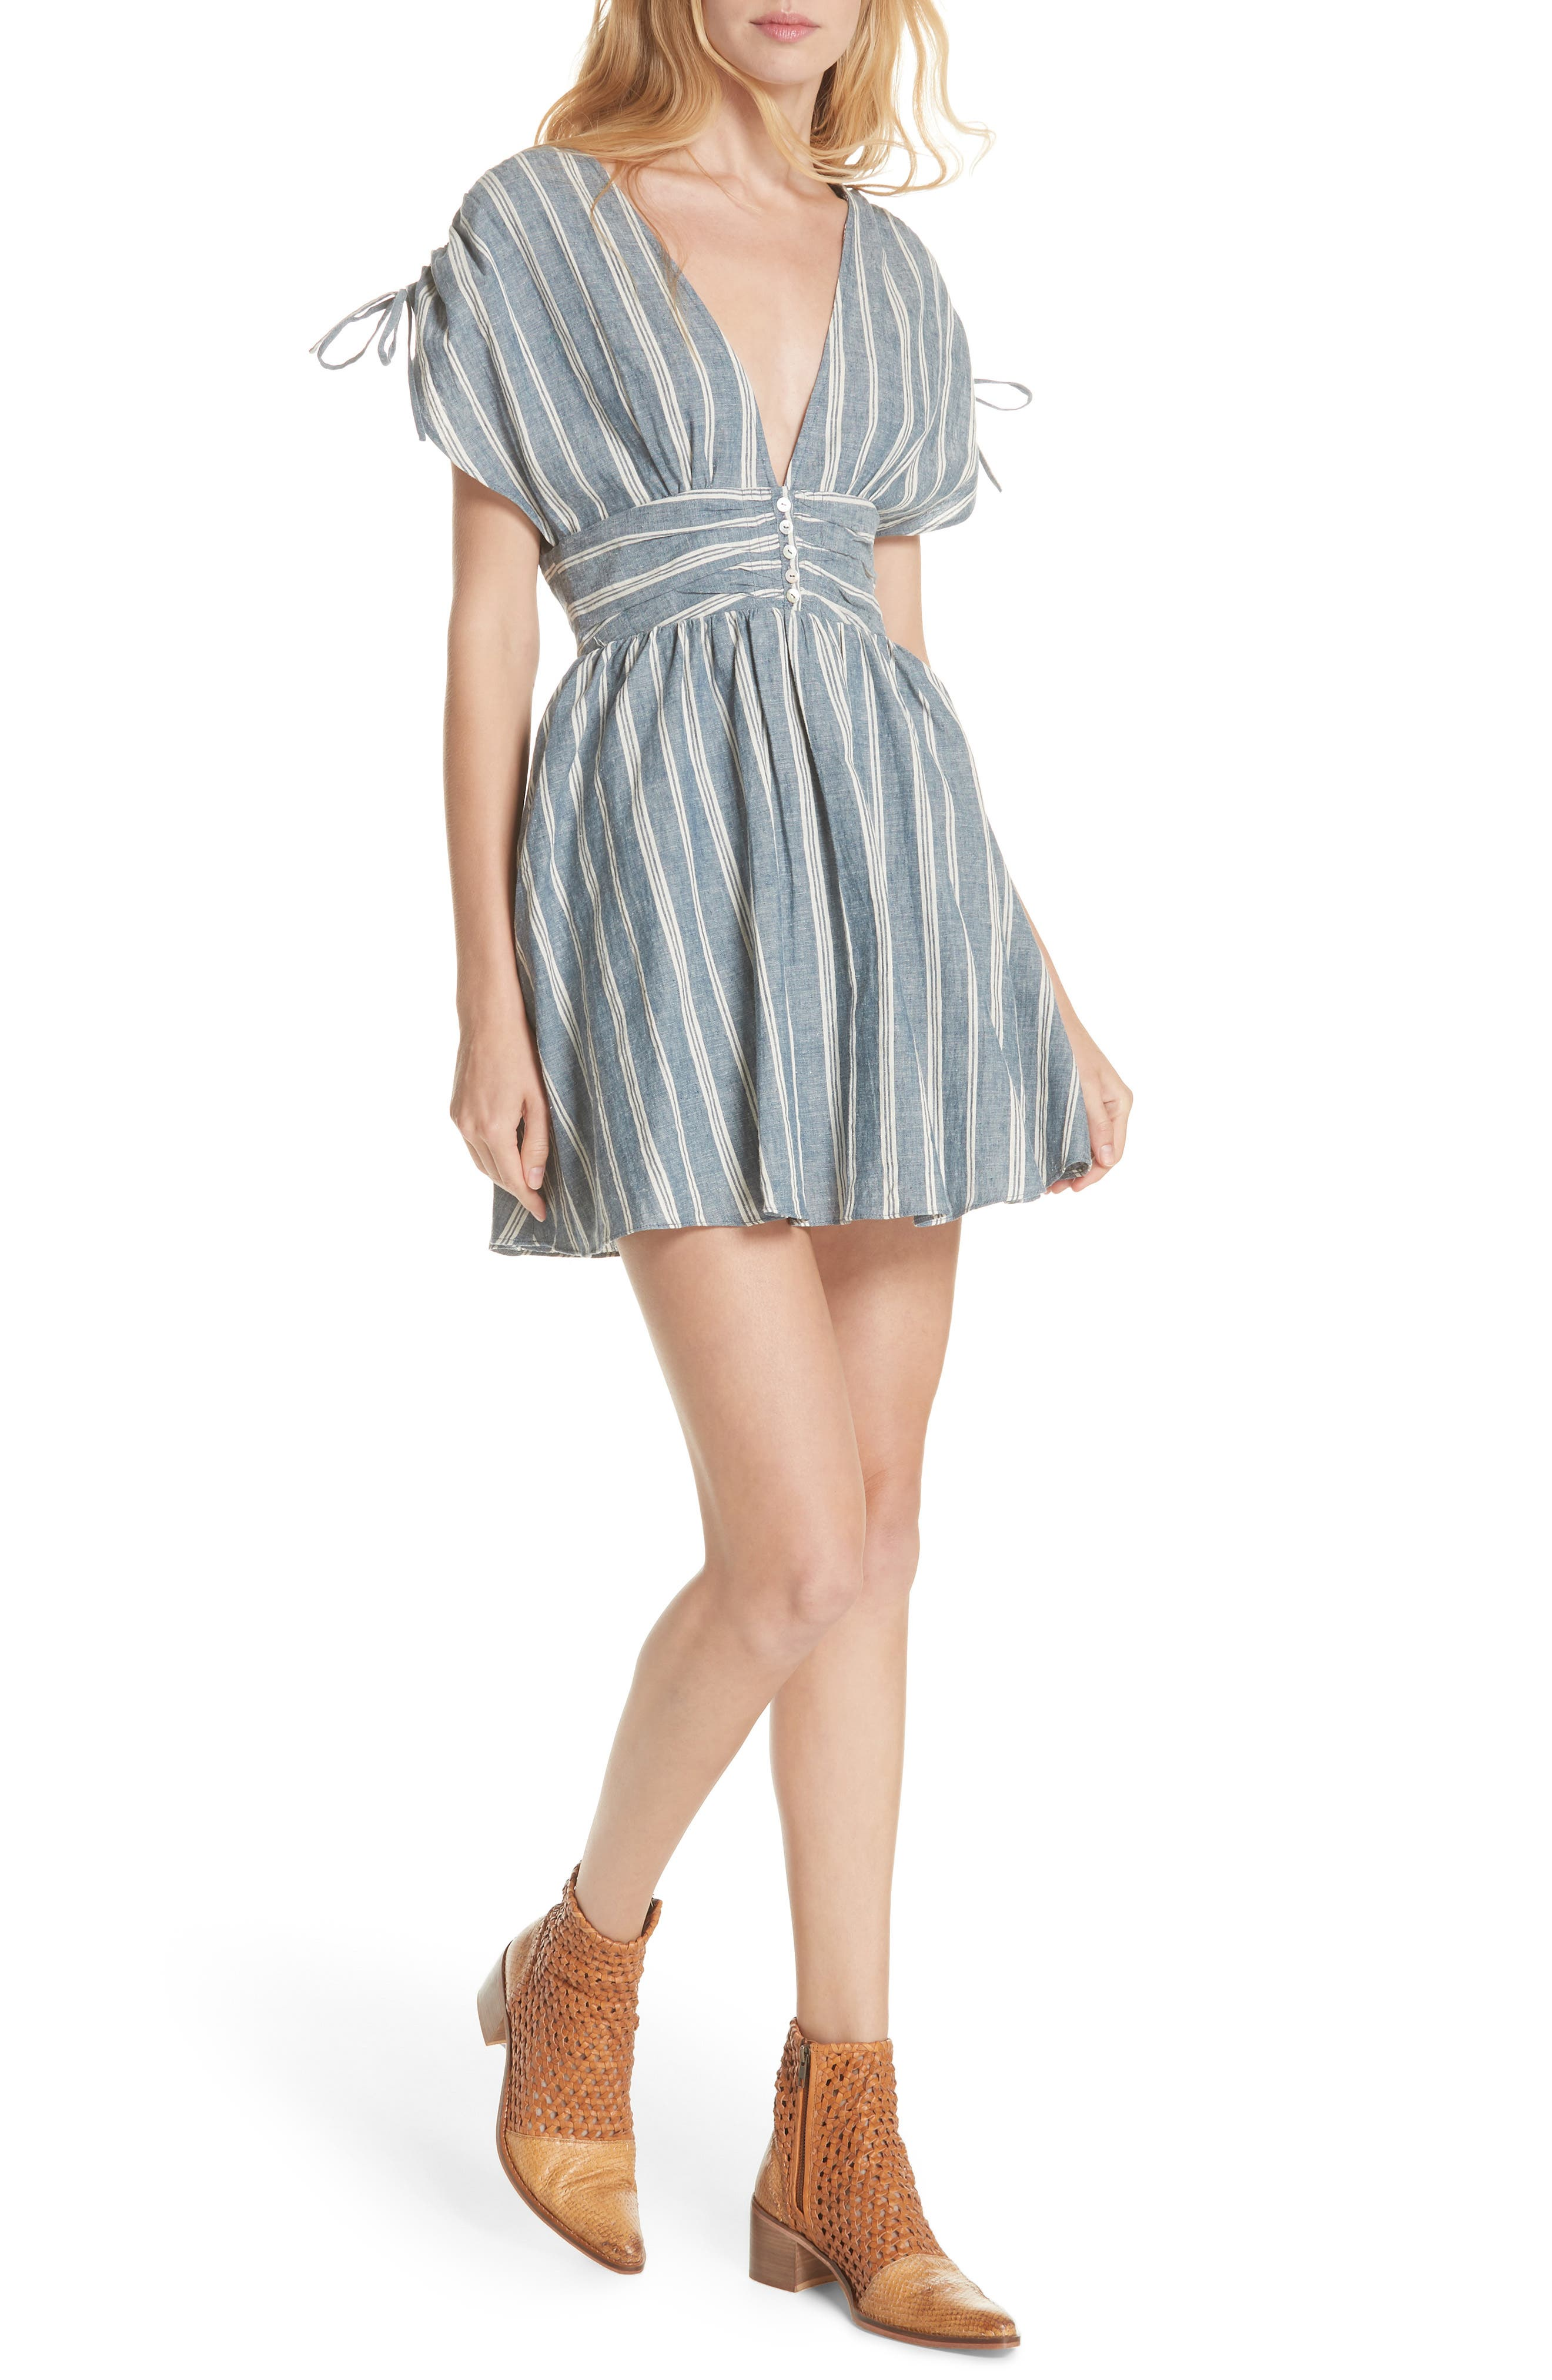 FREE PEOPLE,                             Roll the Dice Stripe Dress,                             Main thumbnail 1, color,                             400